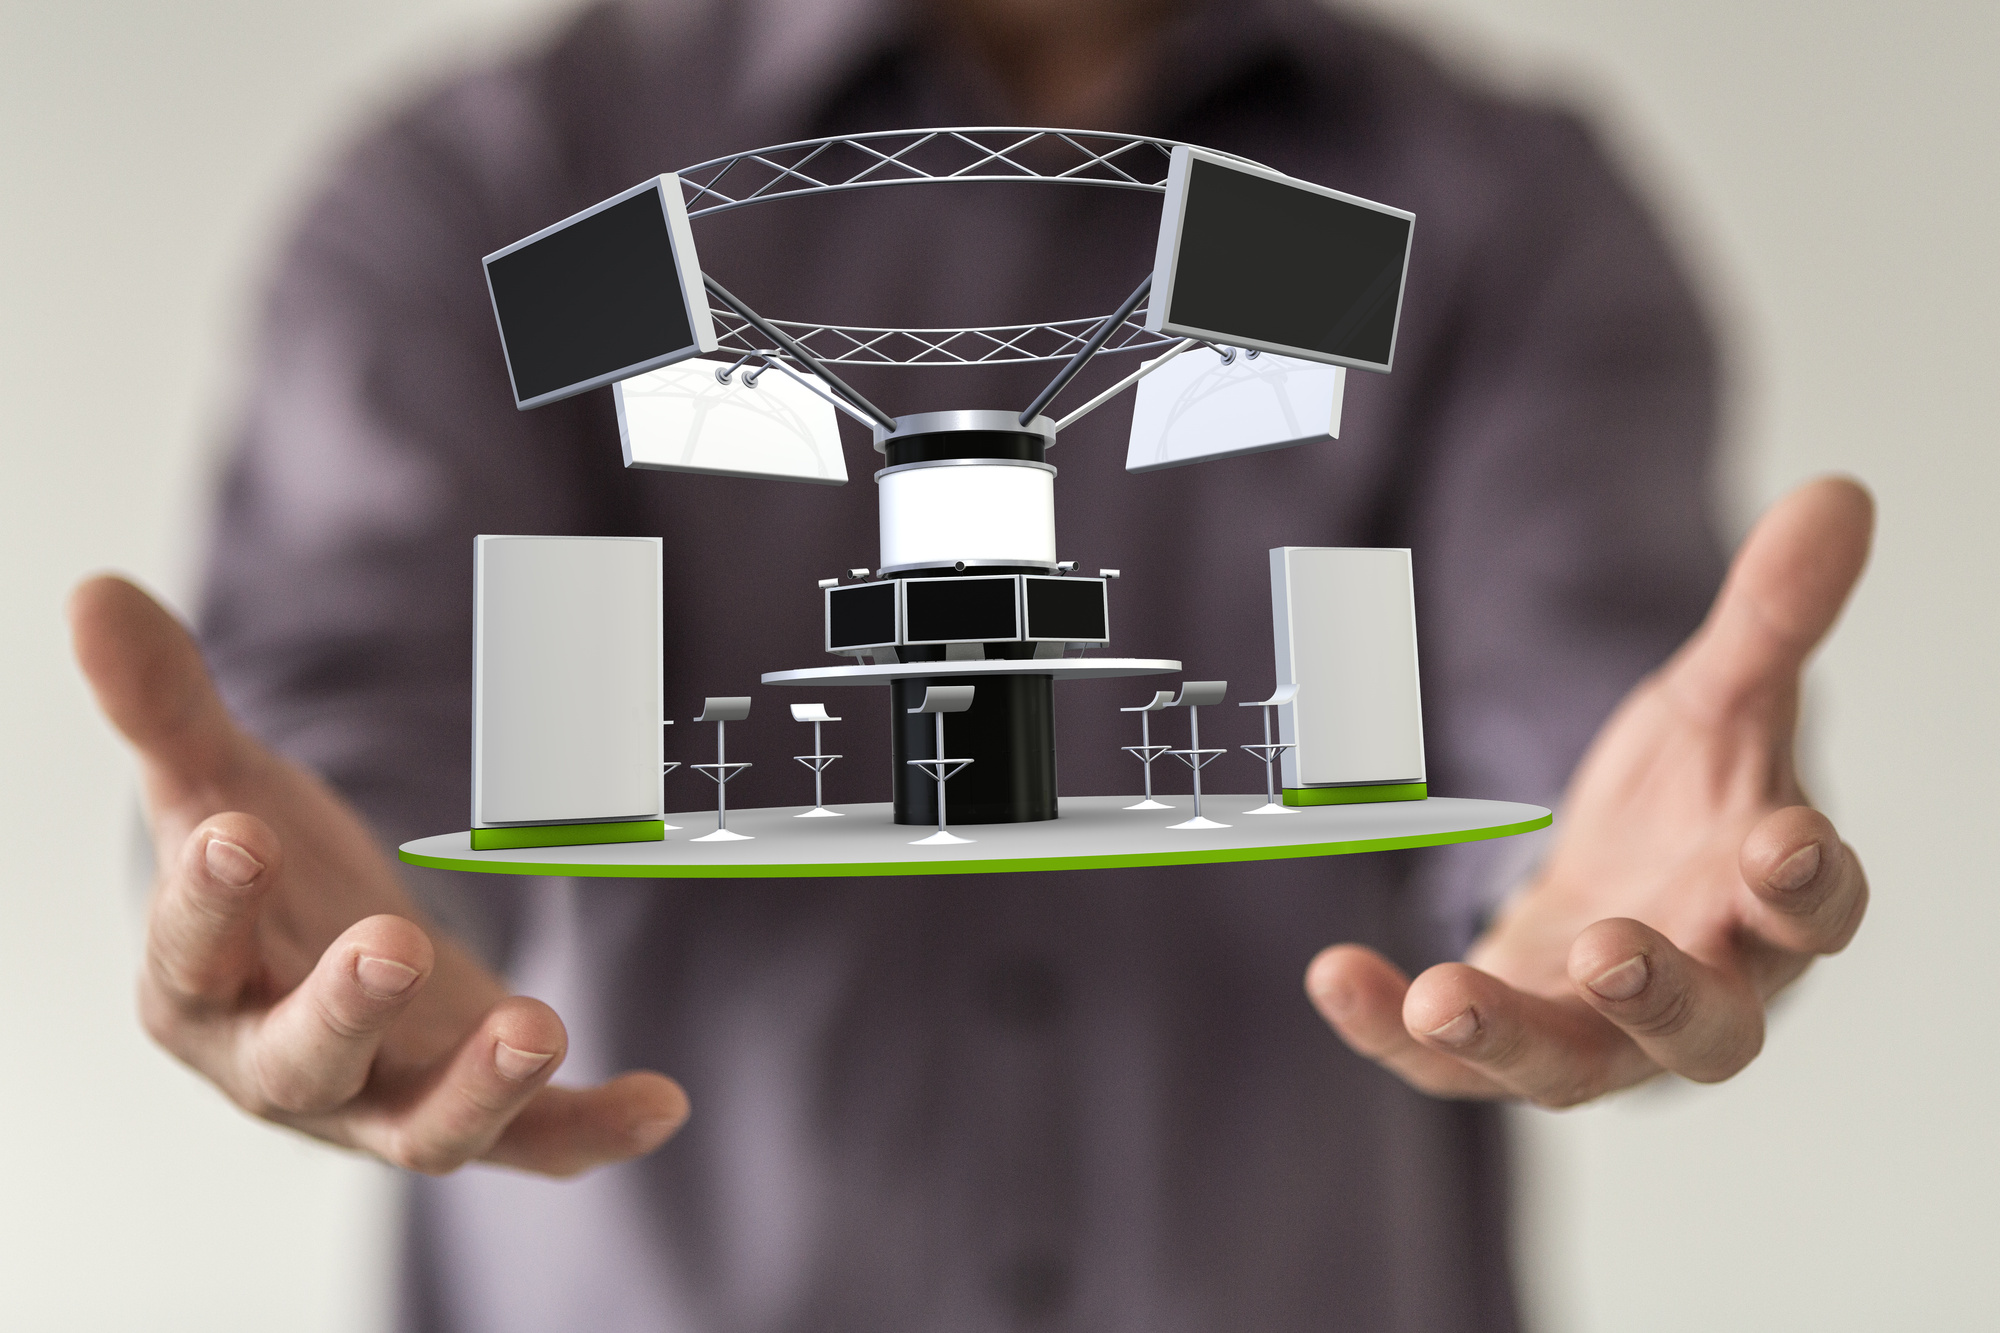 7 Awesome Trade Show Display Ideas to Help Attract Visitors